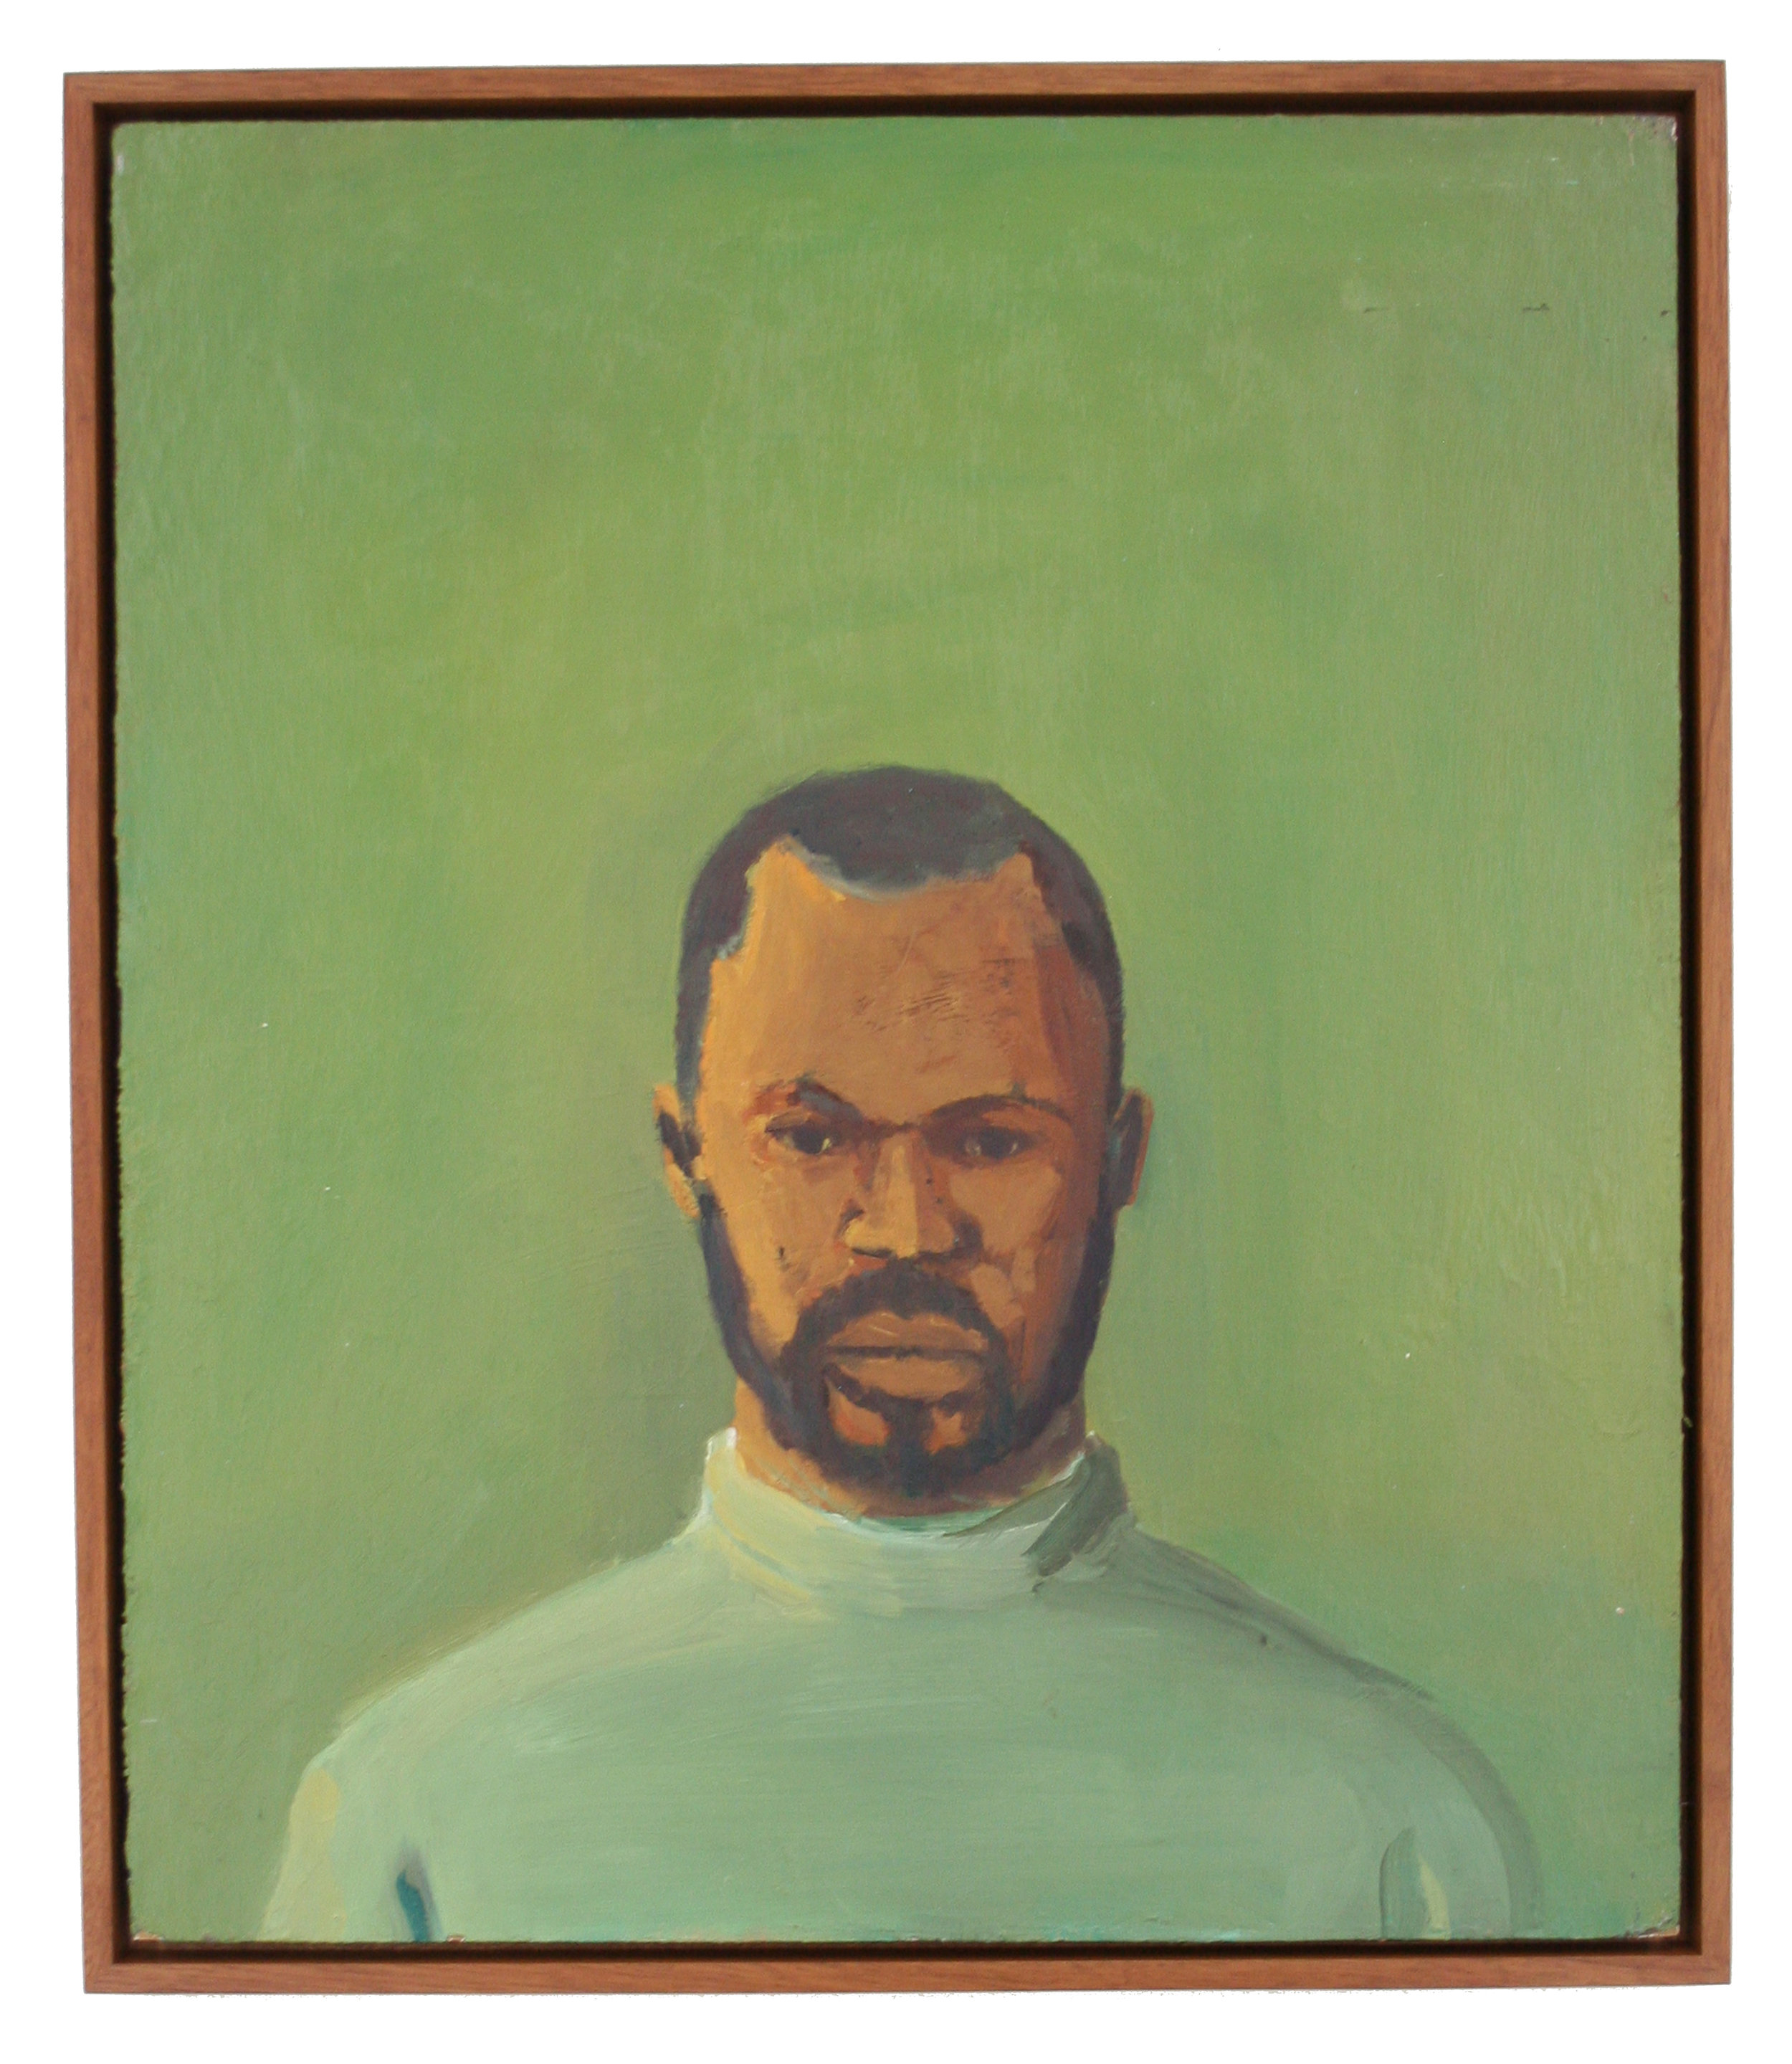 Self Portrait at Skowhegan 2002 20 x 24 oil on panel with floating frame